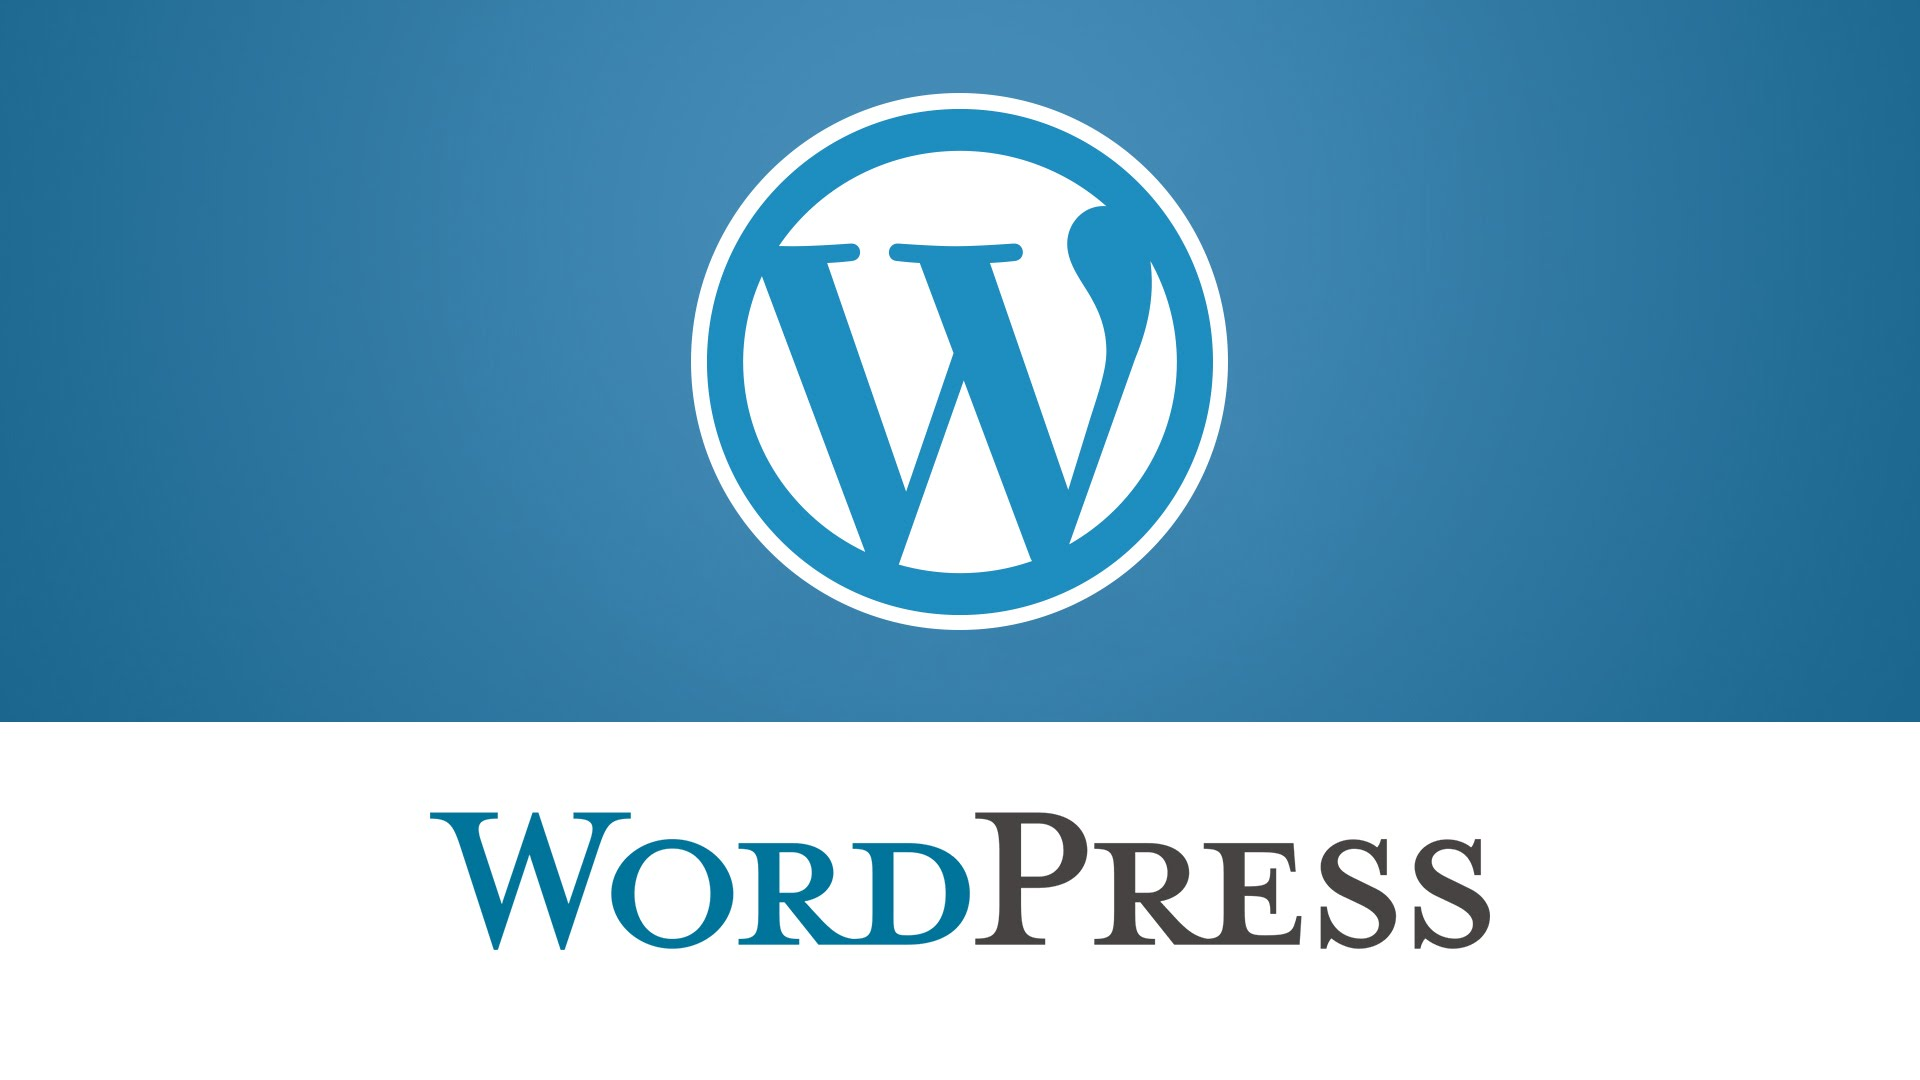 Top 10 WordPress Tips for Beginners